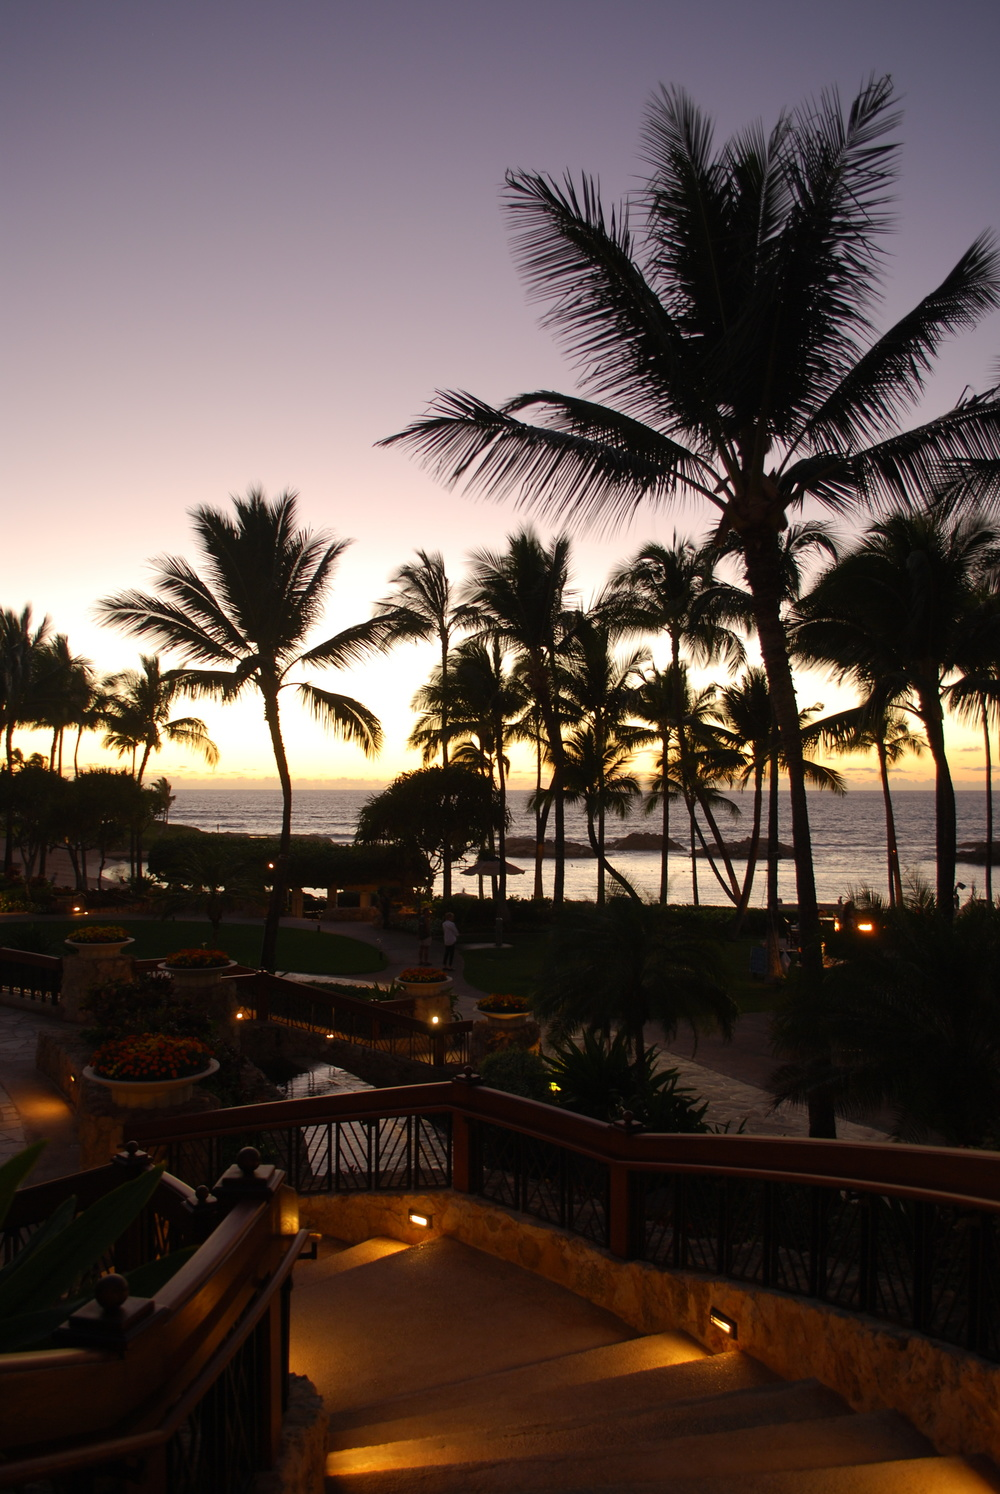 JW Marriott Ihilani Resort & Spa at Ko Olina, Oahu | The sunset on our first night.